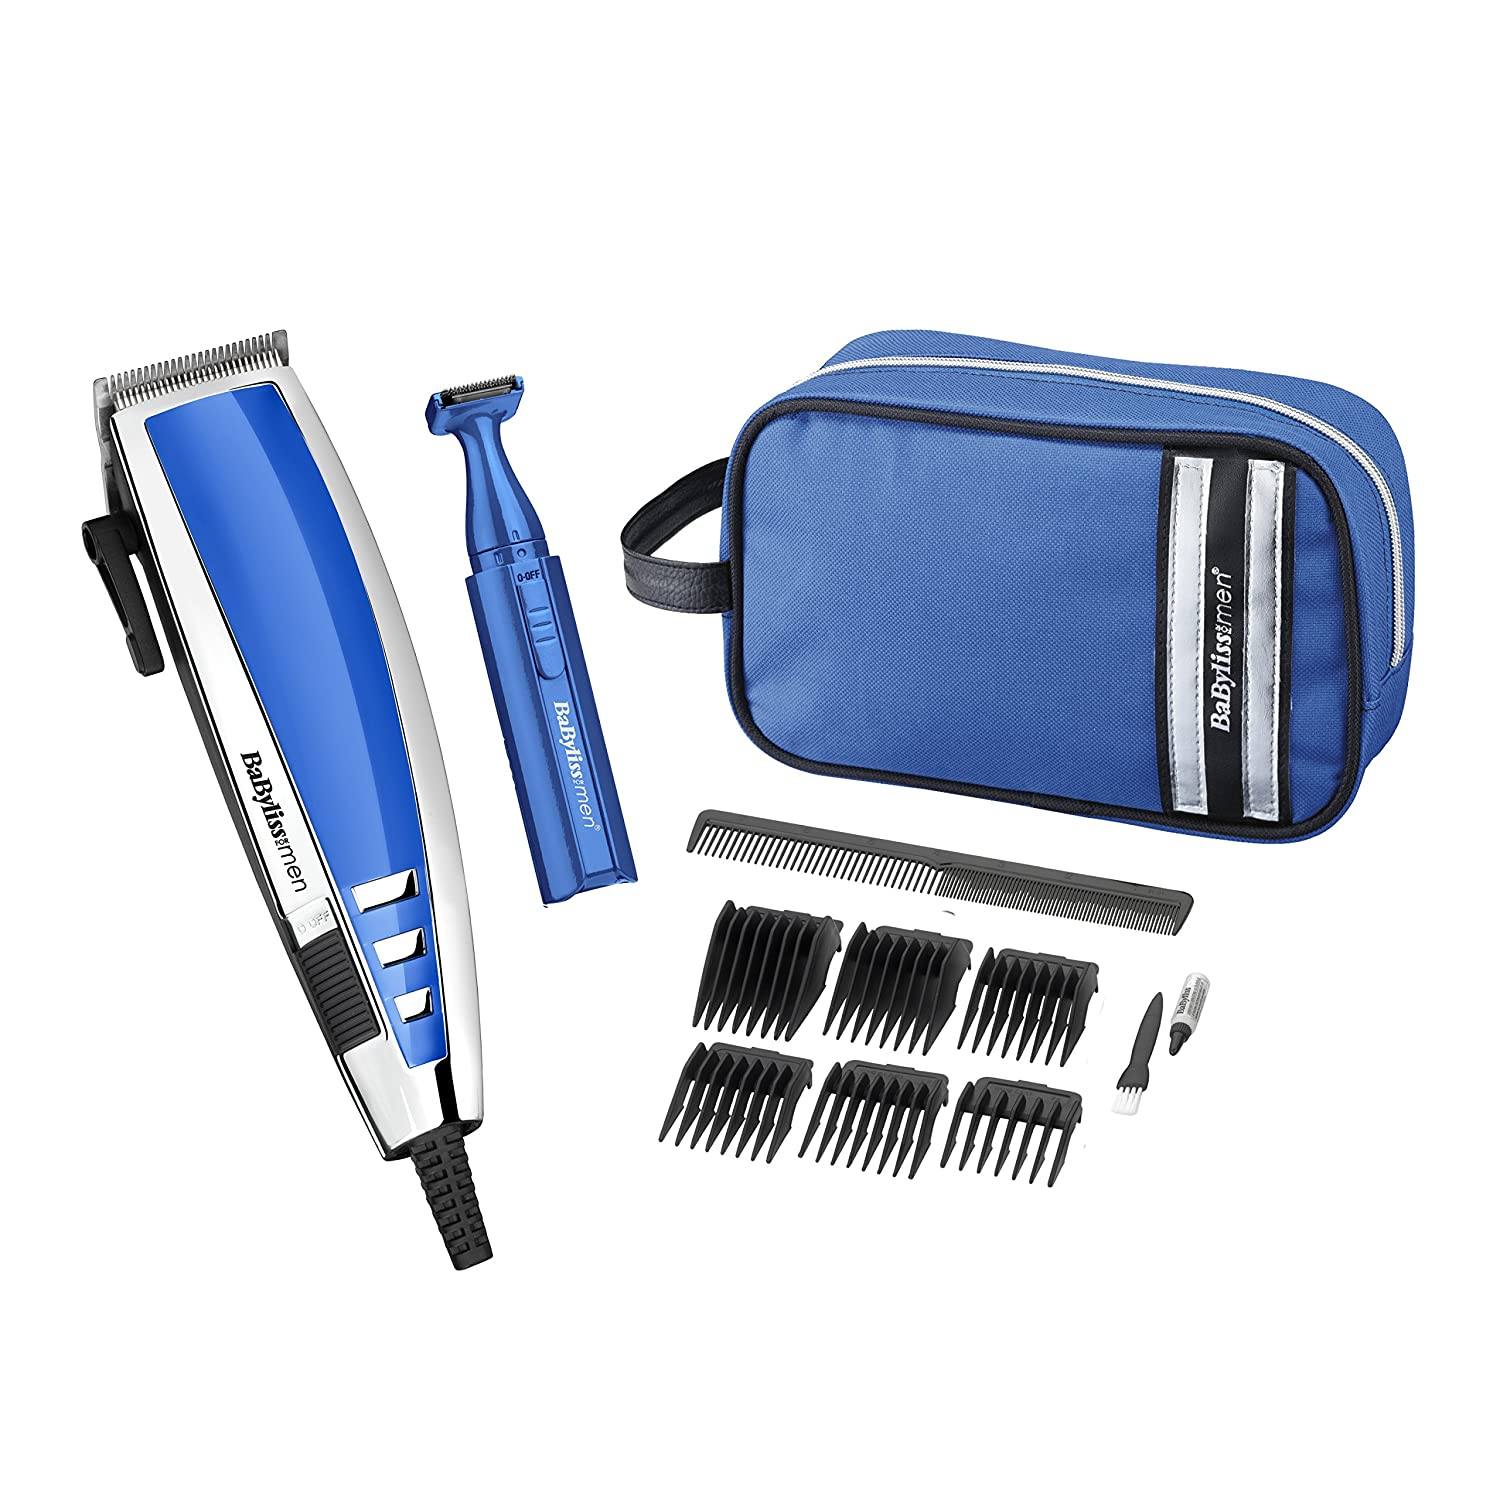 BaByliss for Men 7447GU Clipper Gift Set for Men The Conair Group Ltd